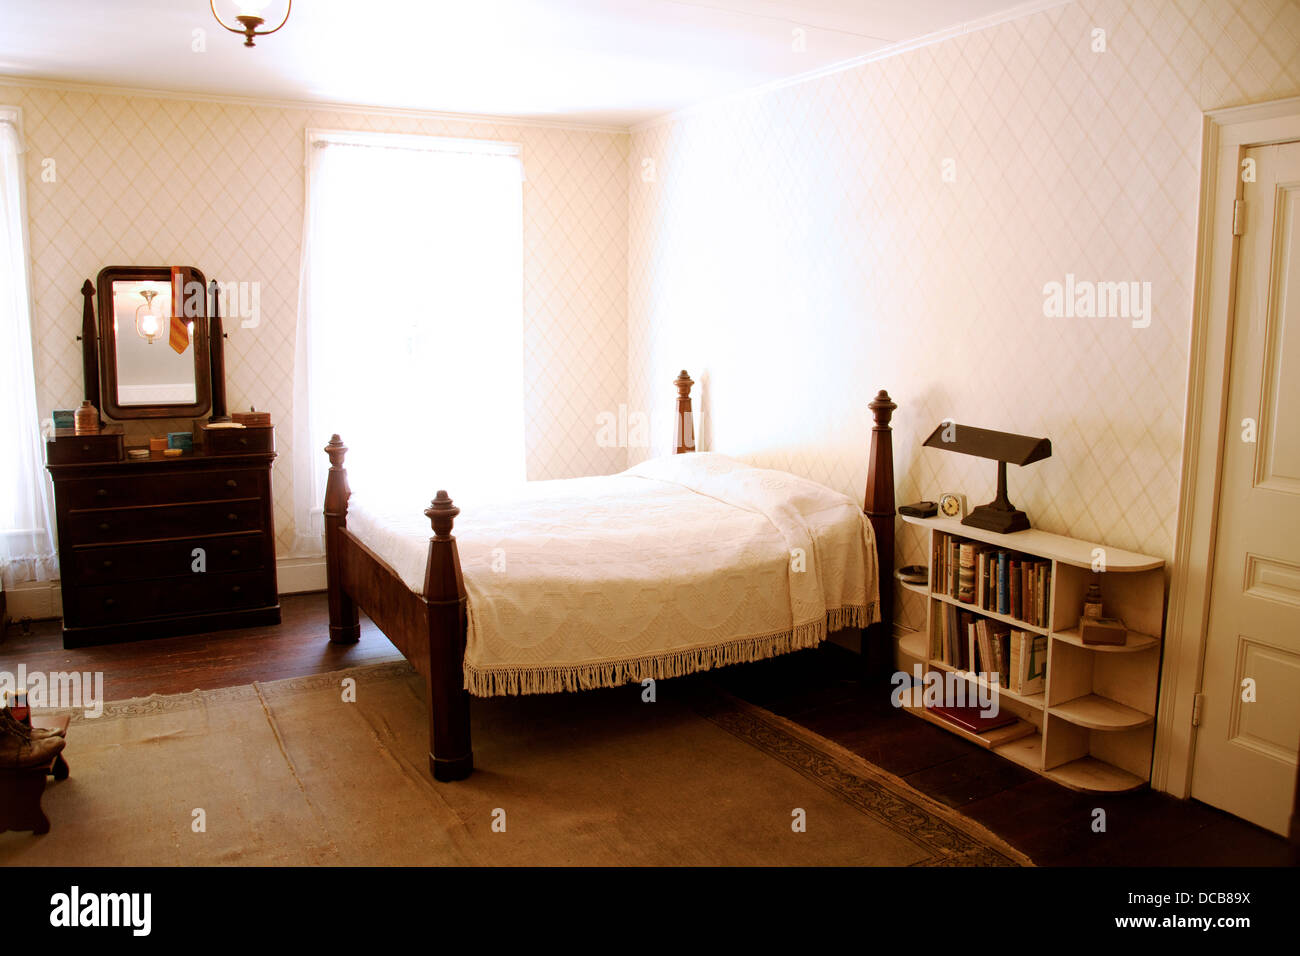 Stock Photo   The Bedroom Of William Faulkner At His Home U0027Rowan Oaku0027 In  Oxford Mississippi USA